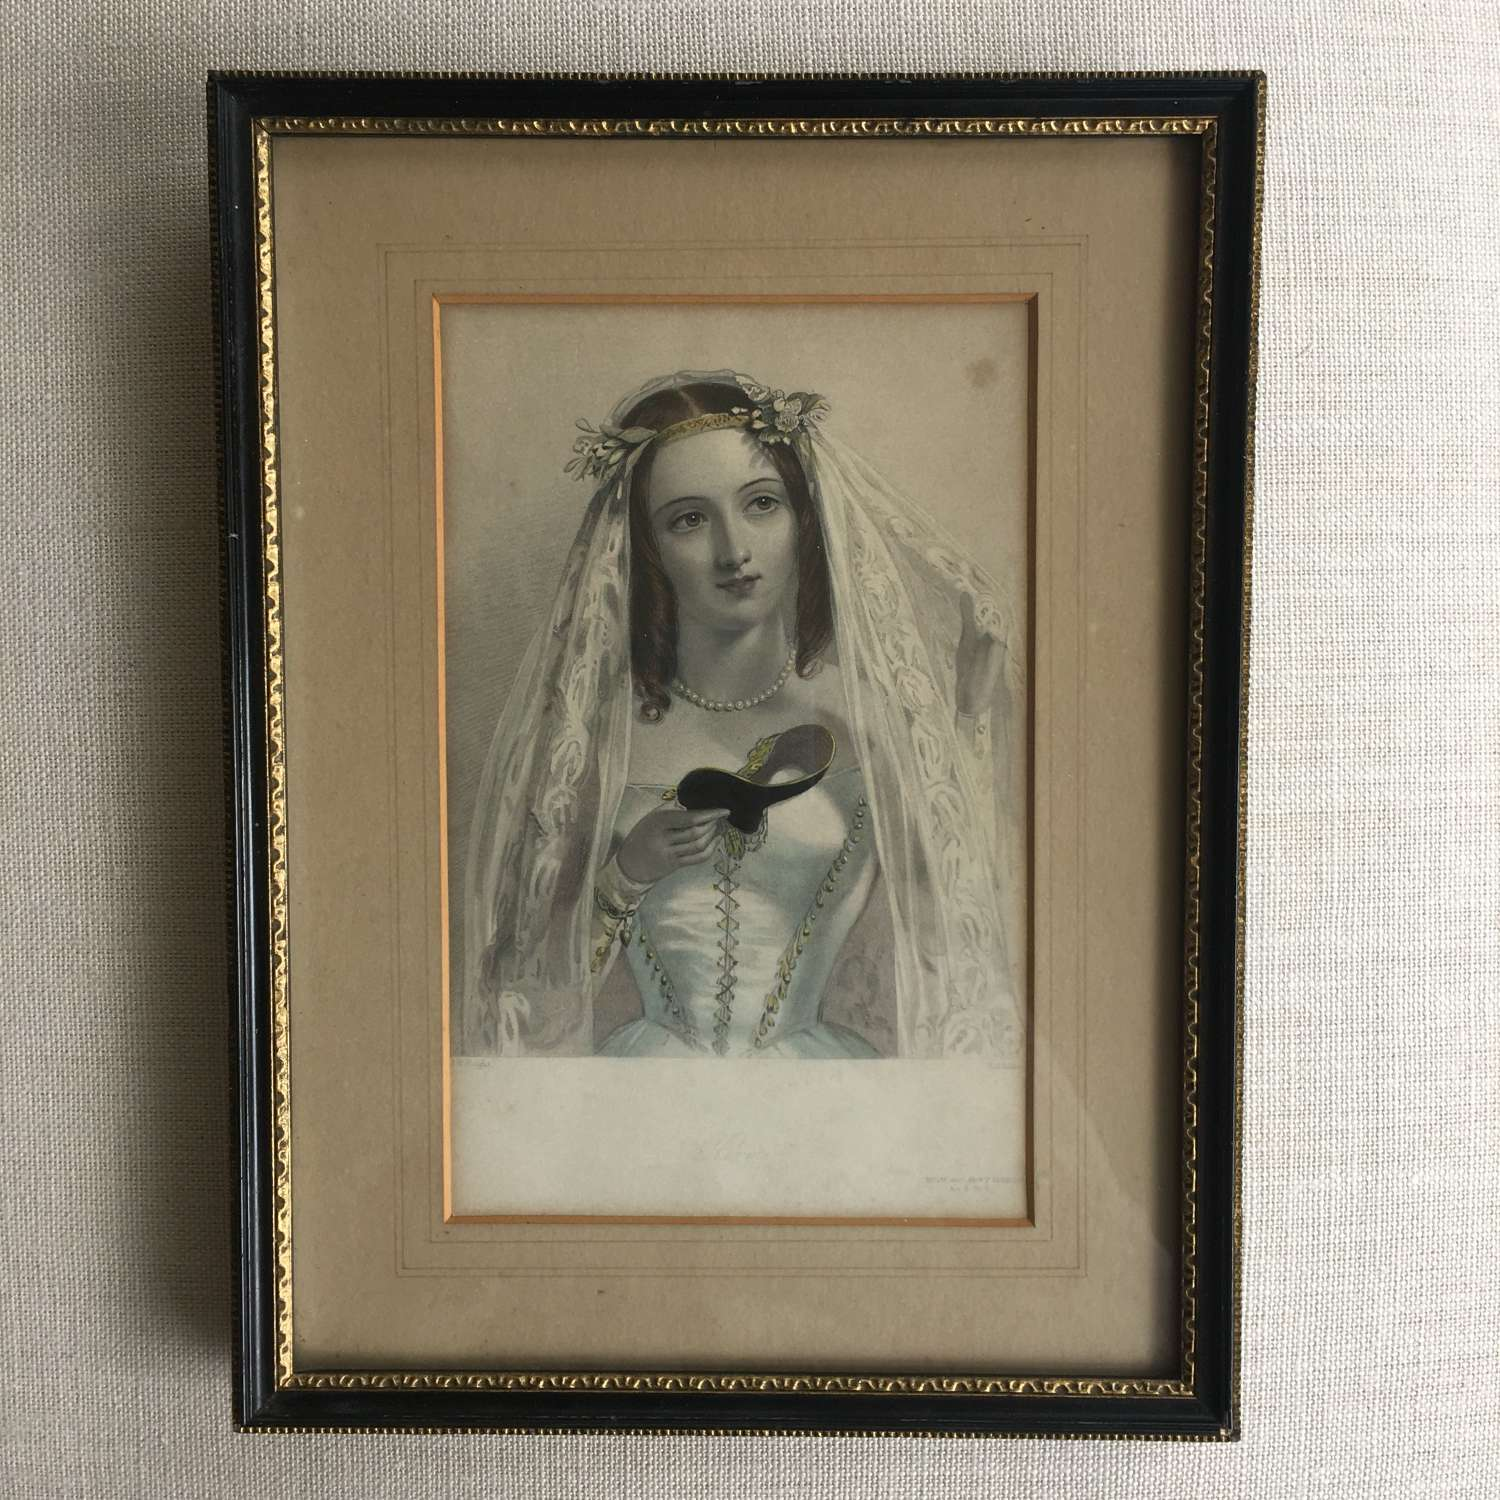 Framed antique print of Hero (Much ado about nothing), original frame